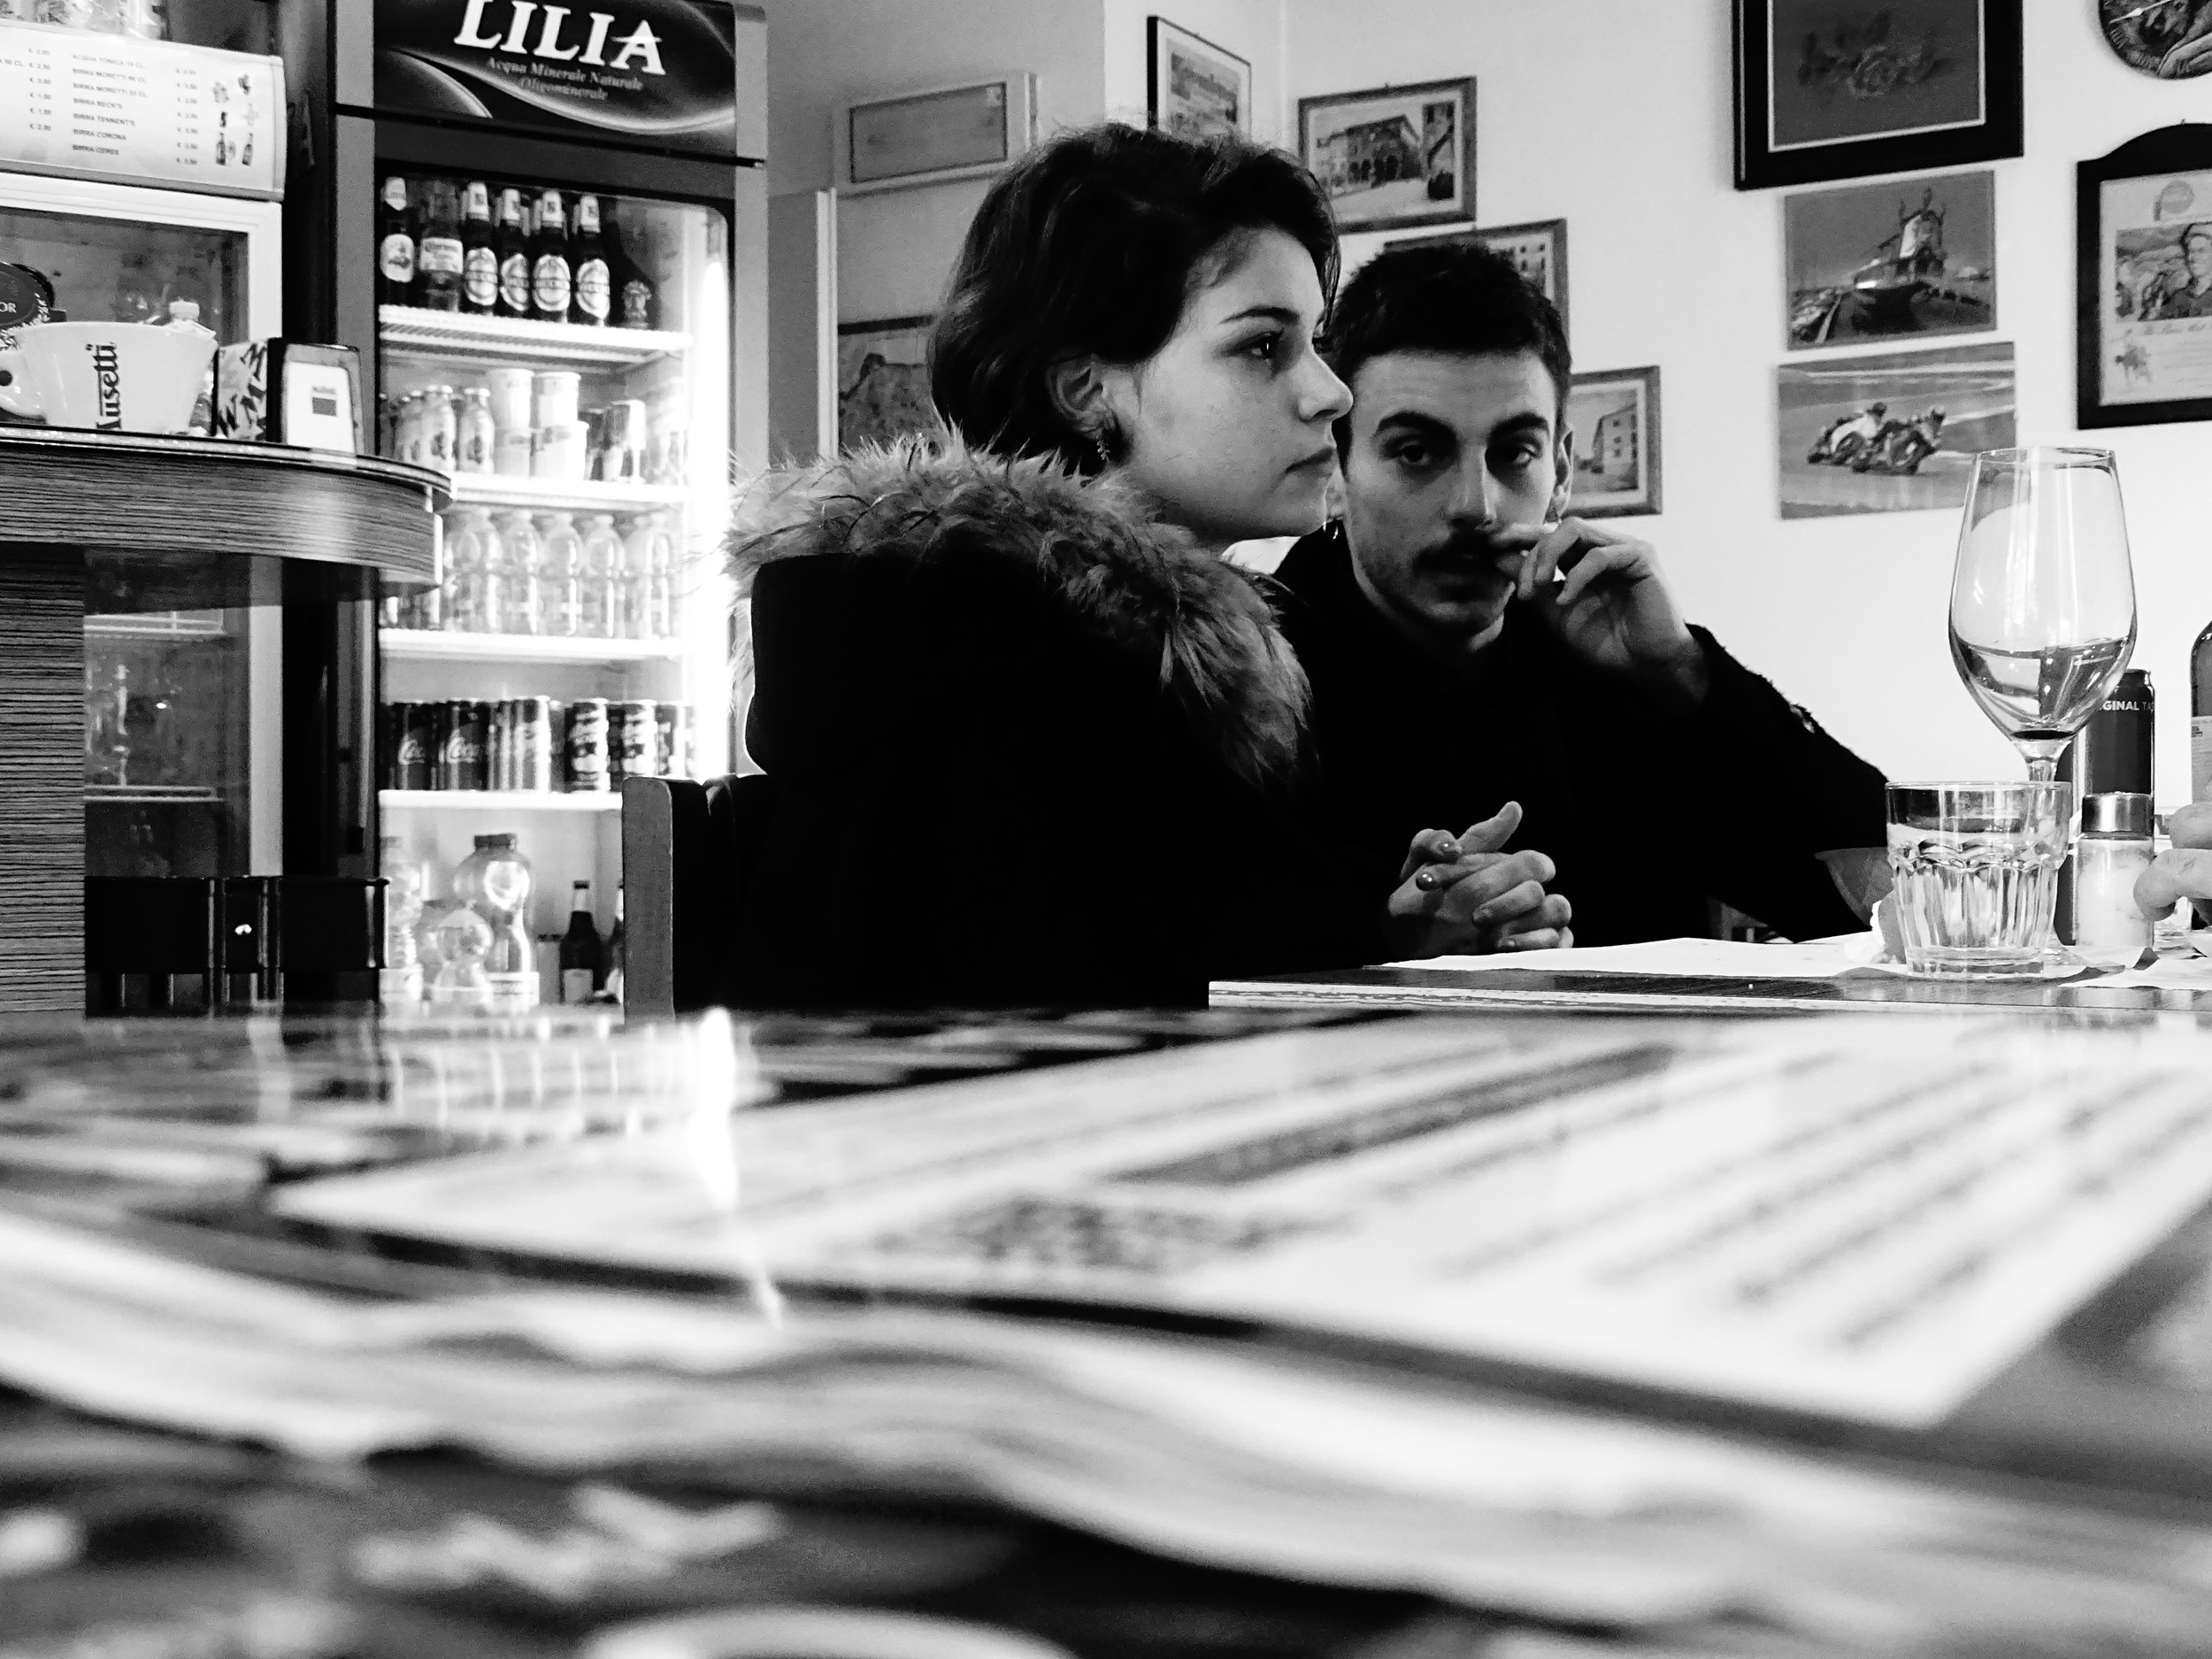 Young Couple in a Café, Lucca 2018